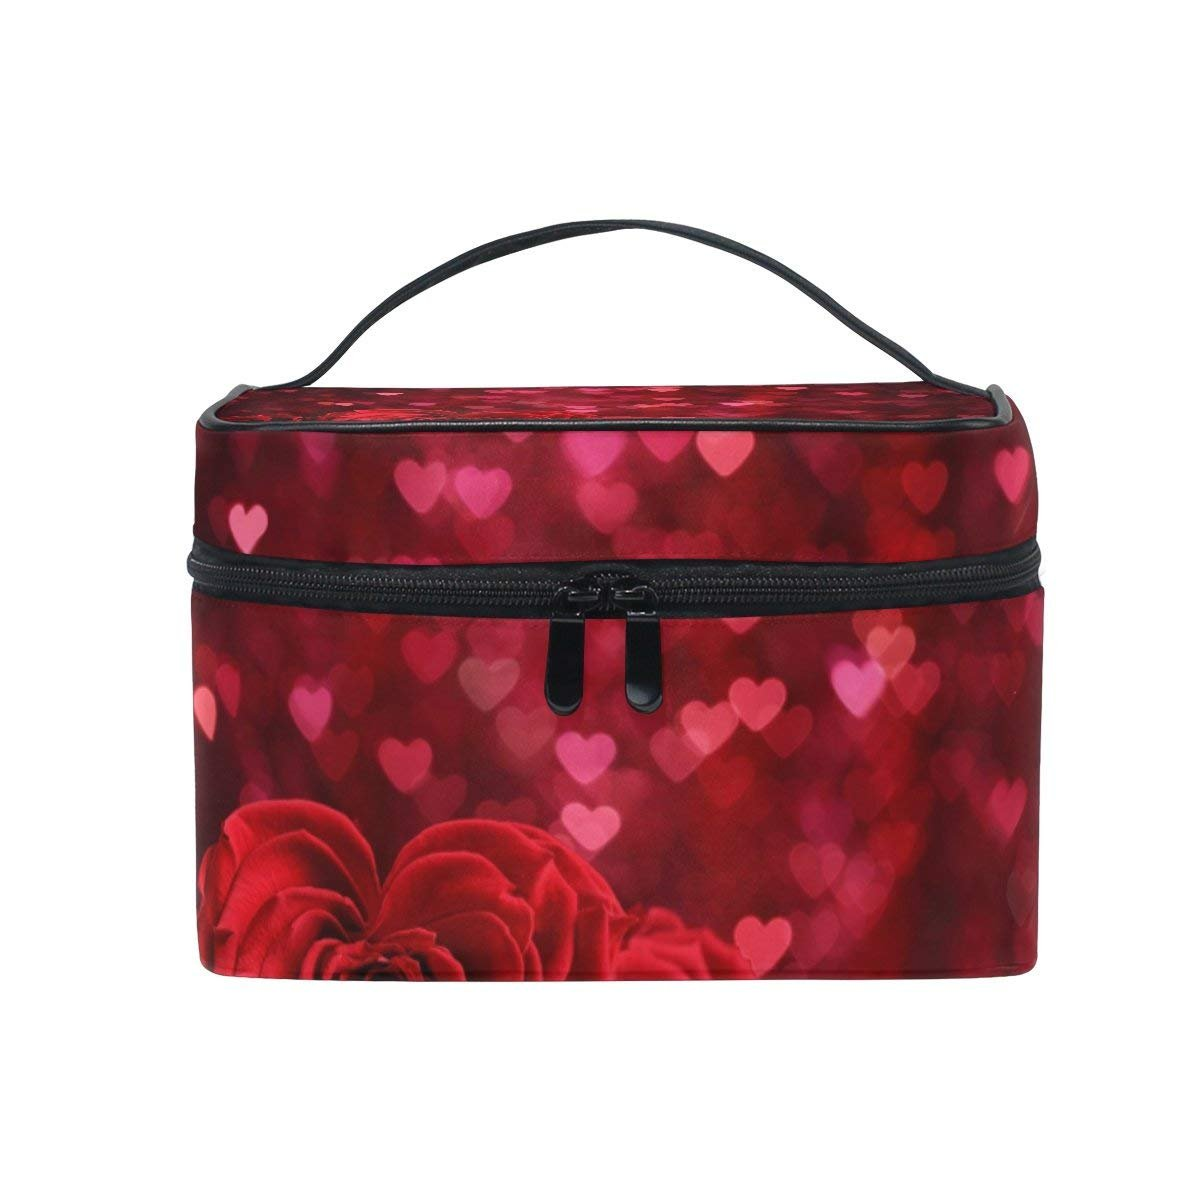 Makeup Organizer Love Red Rose Flowers Womens Zip Toiletry Bag Large Makeup Case Cute Cosmetic Bags for Girls